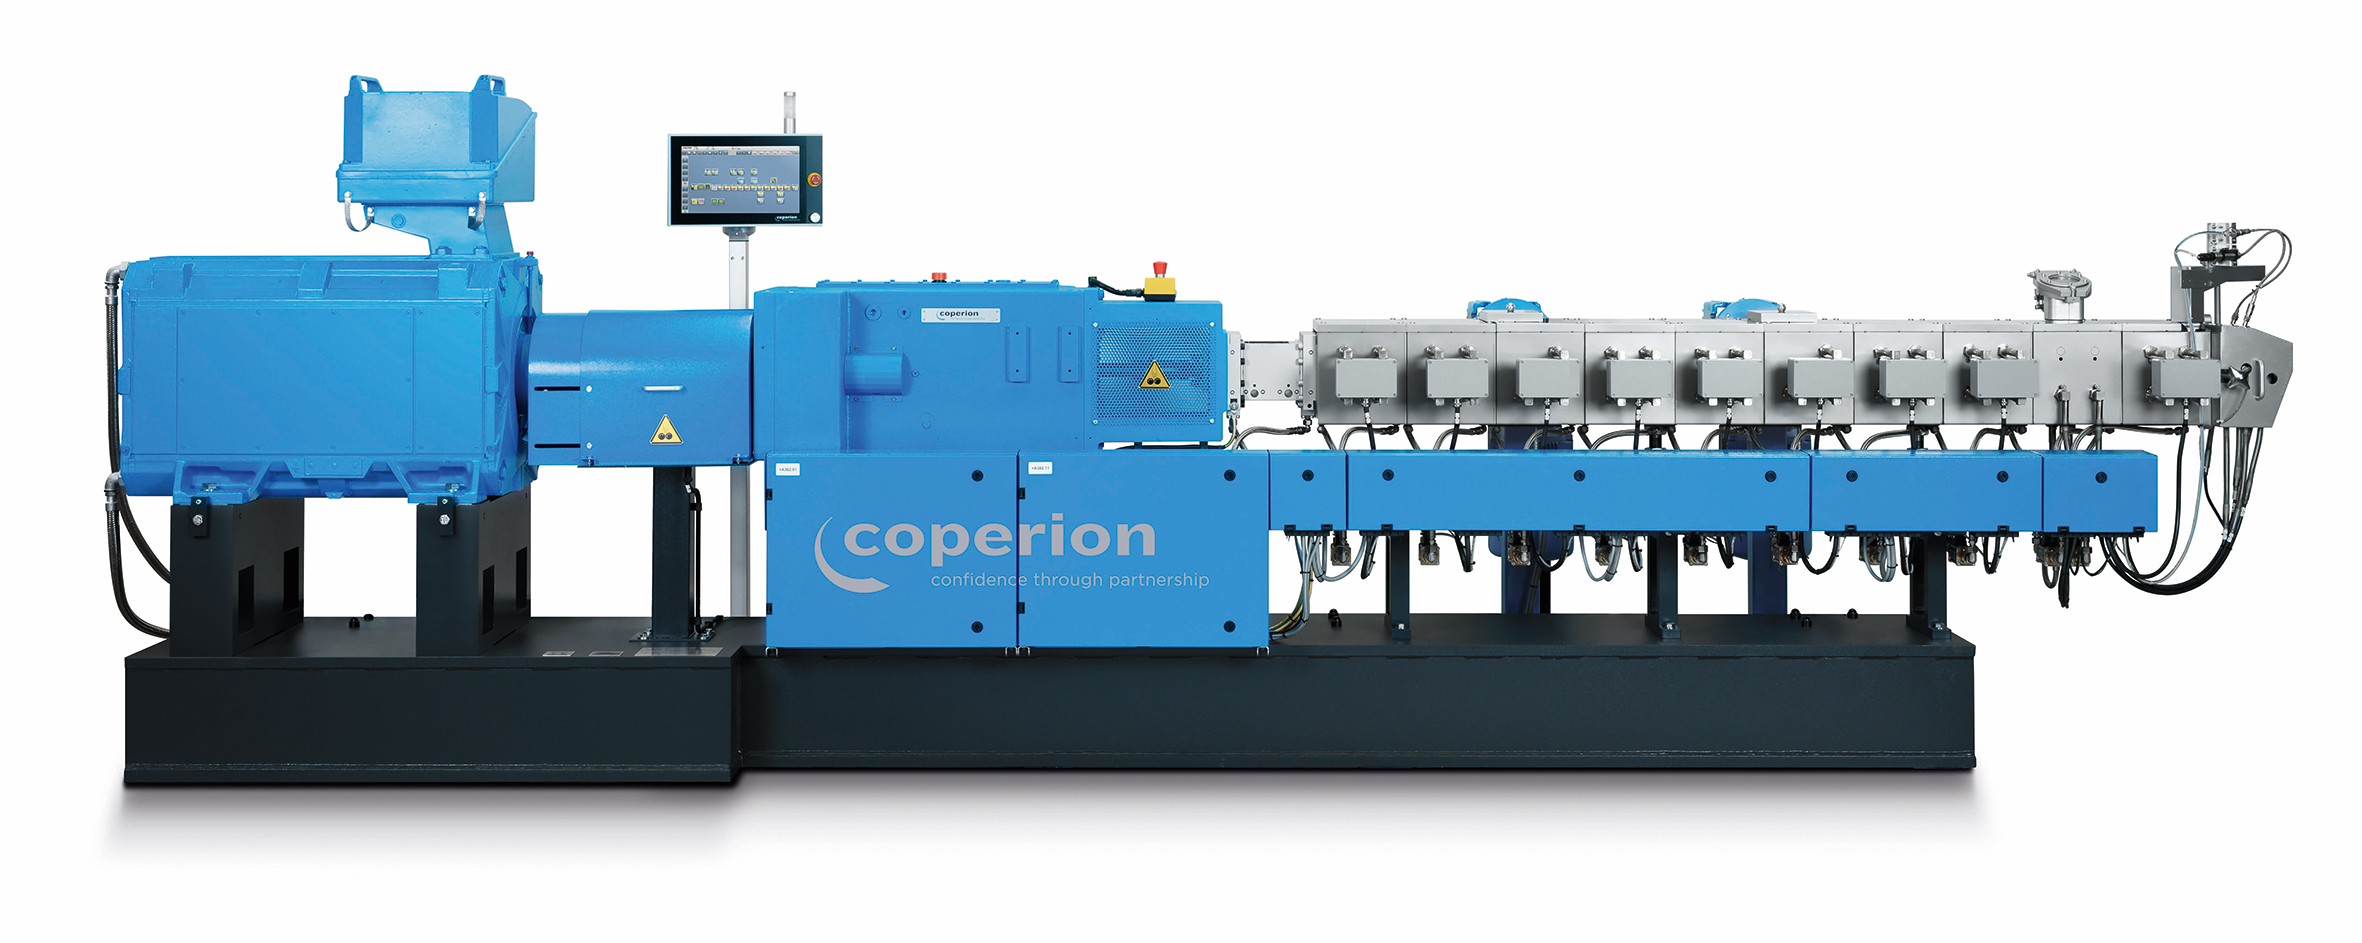 Coperion Twin-Screw Optimized for Engineering Resins